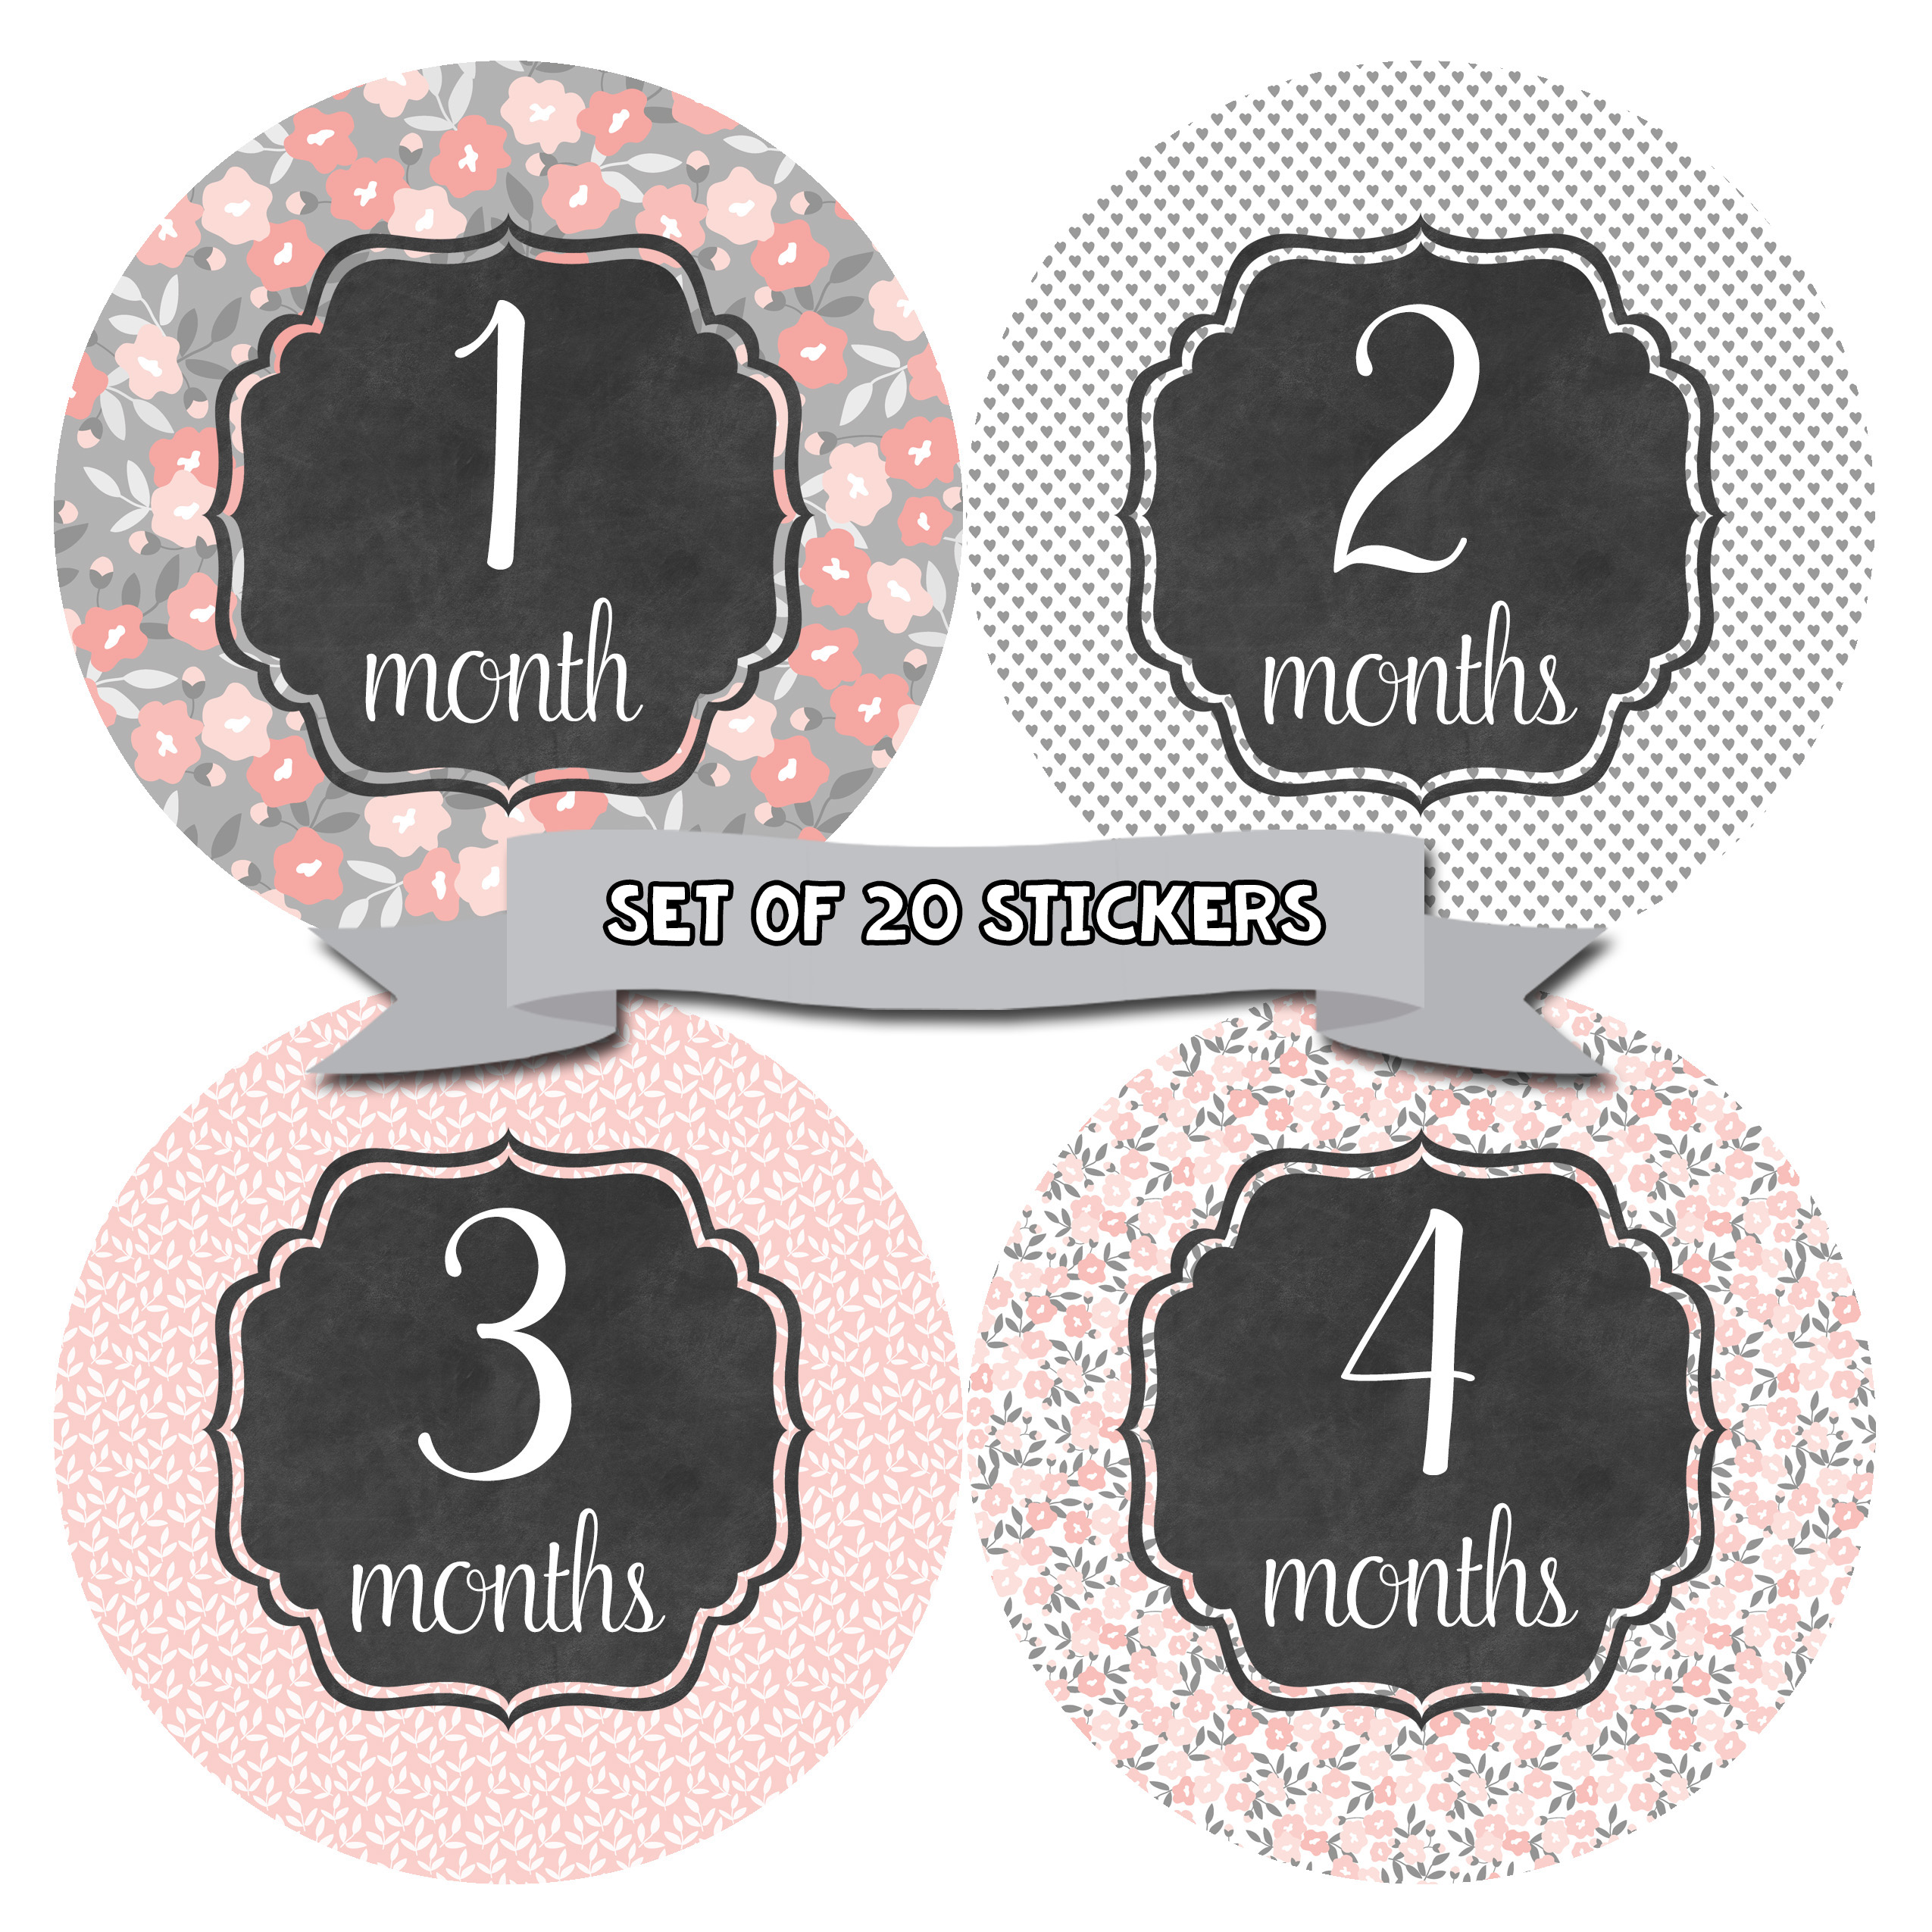 Baby Monthly Milestone Stickers - First Year Set of Baby Girl Month Stickers for Photo Keepsakes - Shower Gift - Set of 20 - Floral Shabby Chic